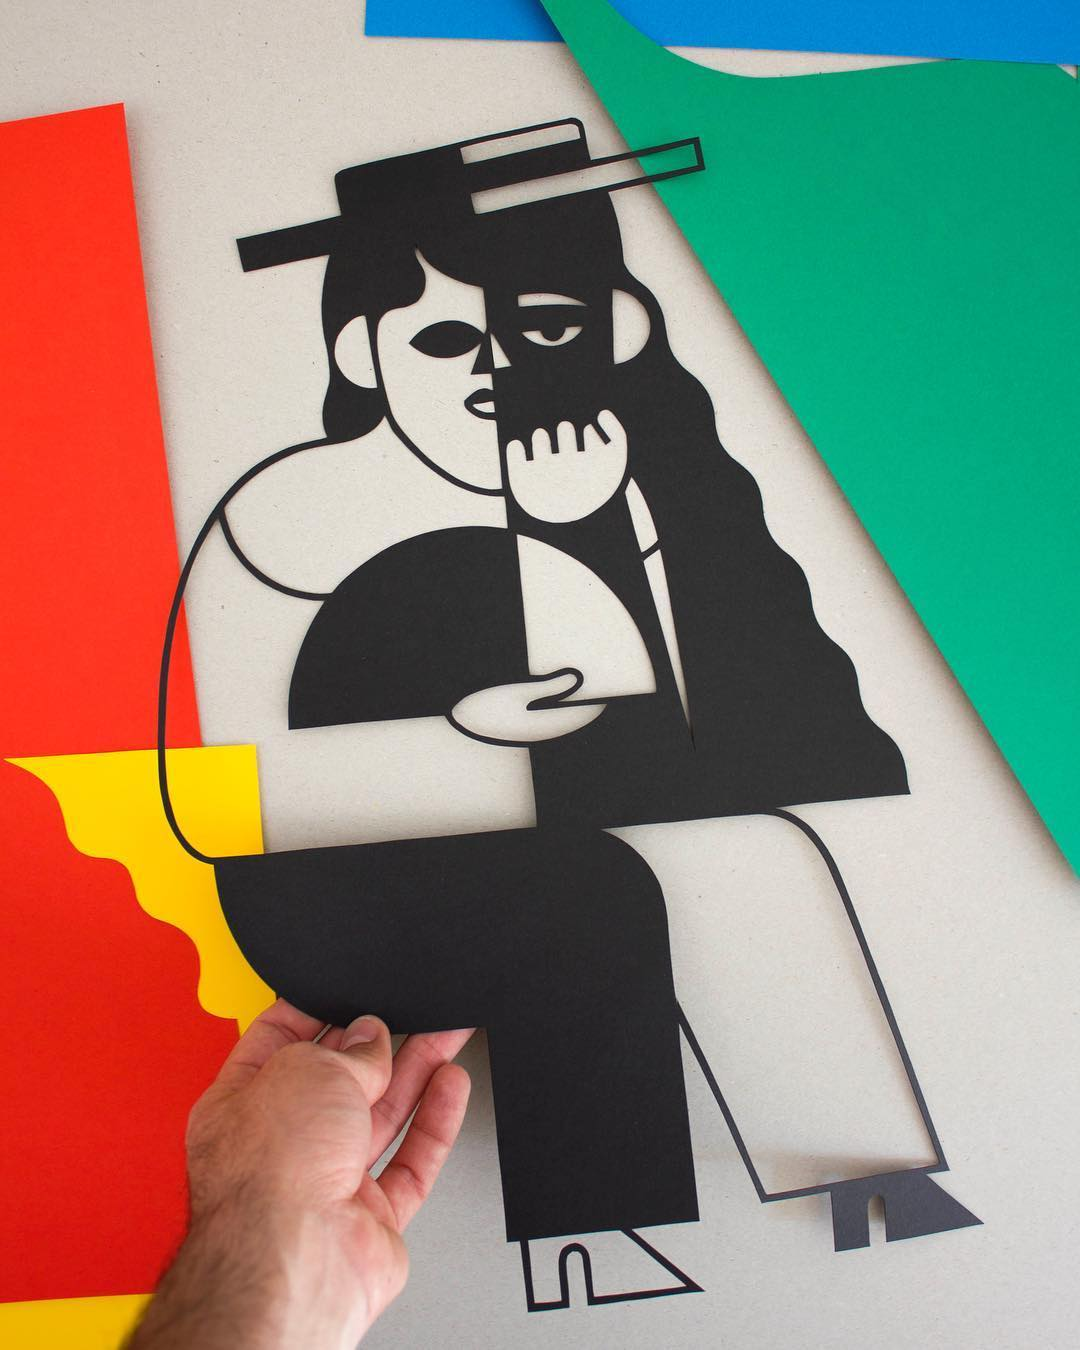 Cubist-Inspired Paper Cutouts Are Effortlessly Cut From a Single Sheet of Paper by Jose Antonio Roda